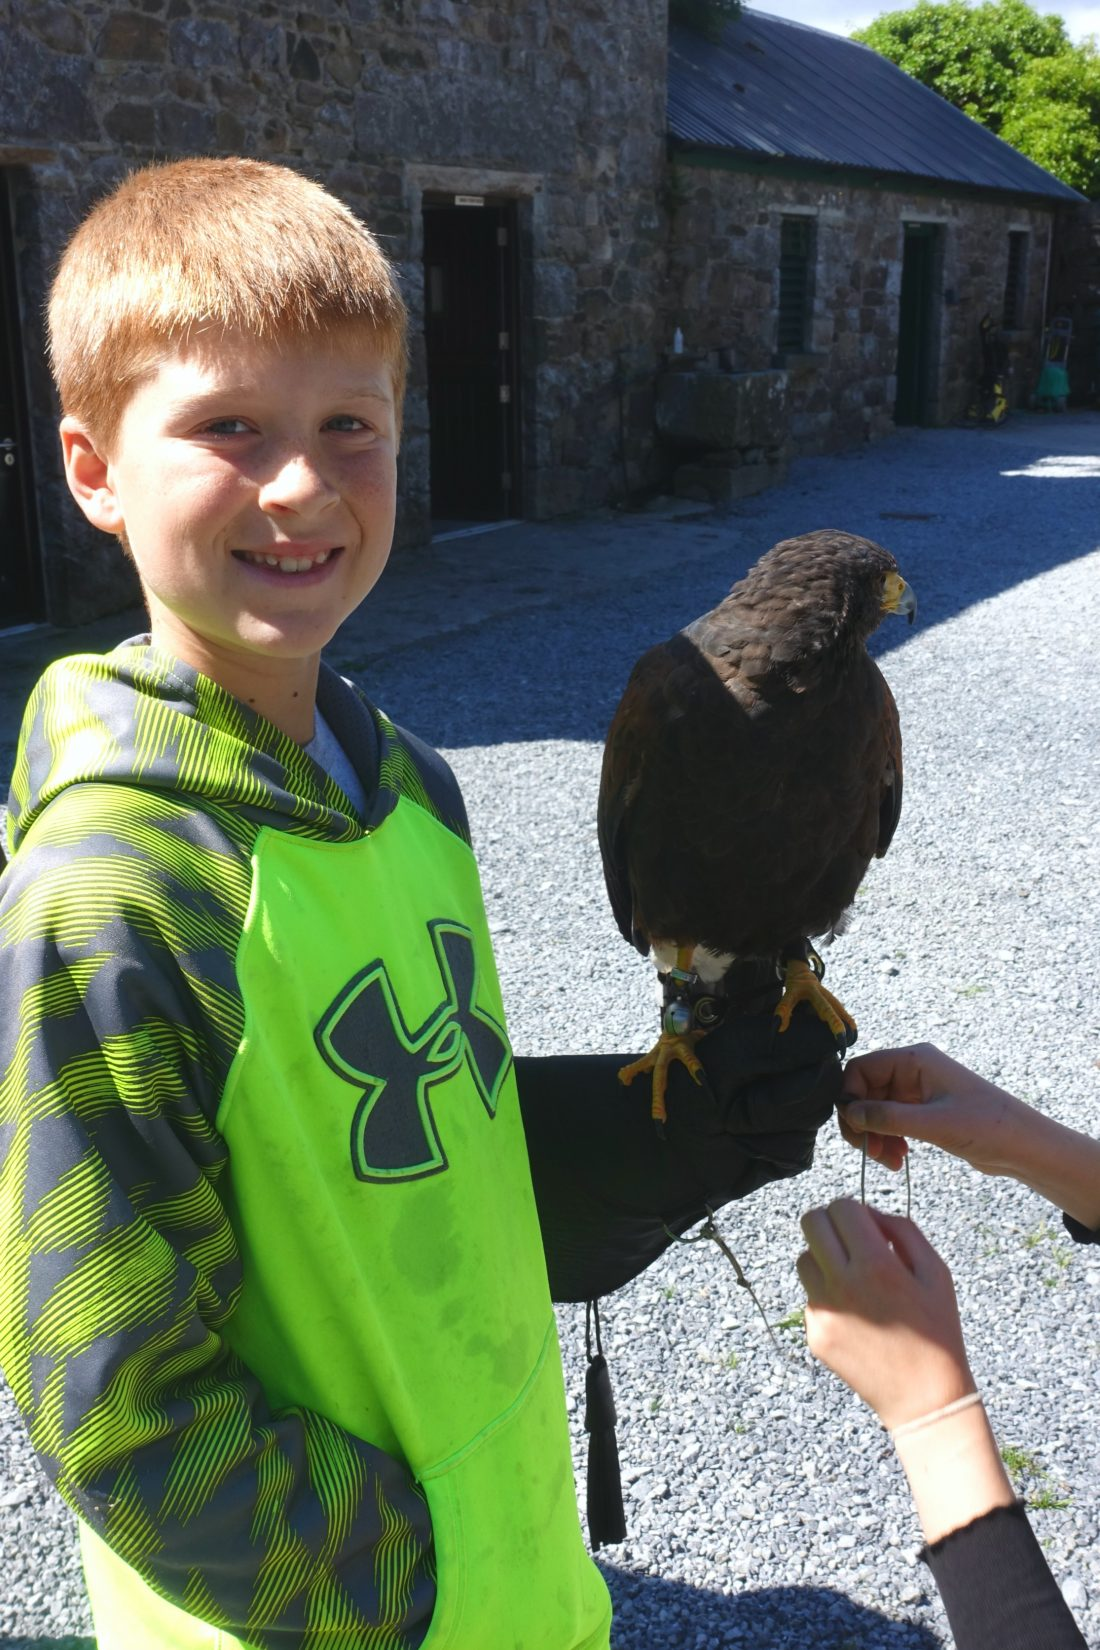 Meeting his hawk. Ireland's School of Falconry at Ashford Castle, County Mayo, Ireland